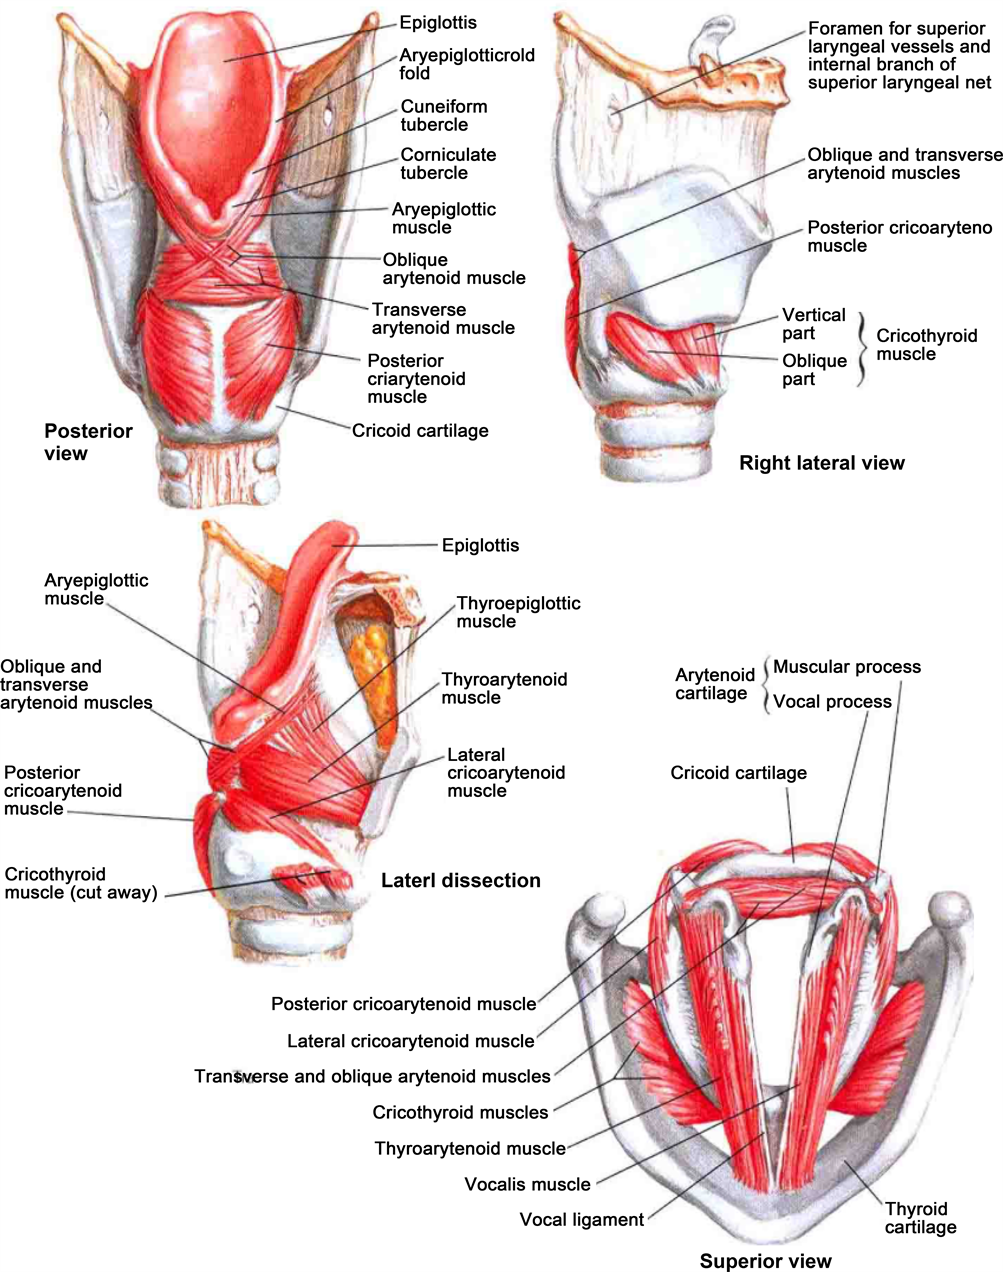 Comprehensive Review of Thyroid Embryology, Anatomy, Histology, and ...